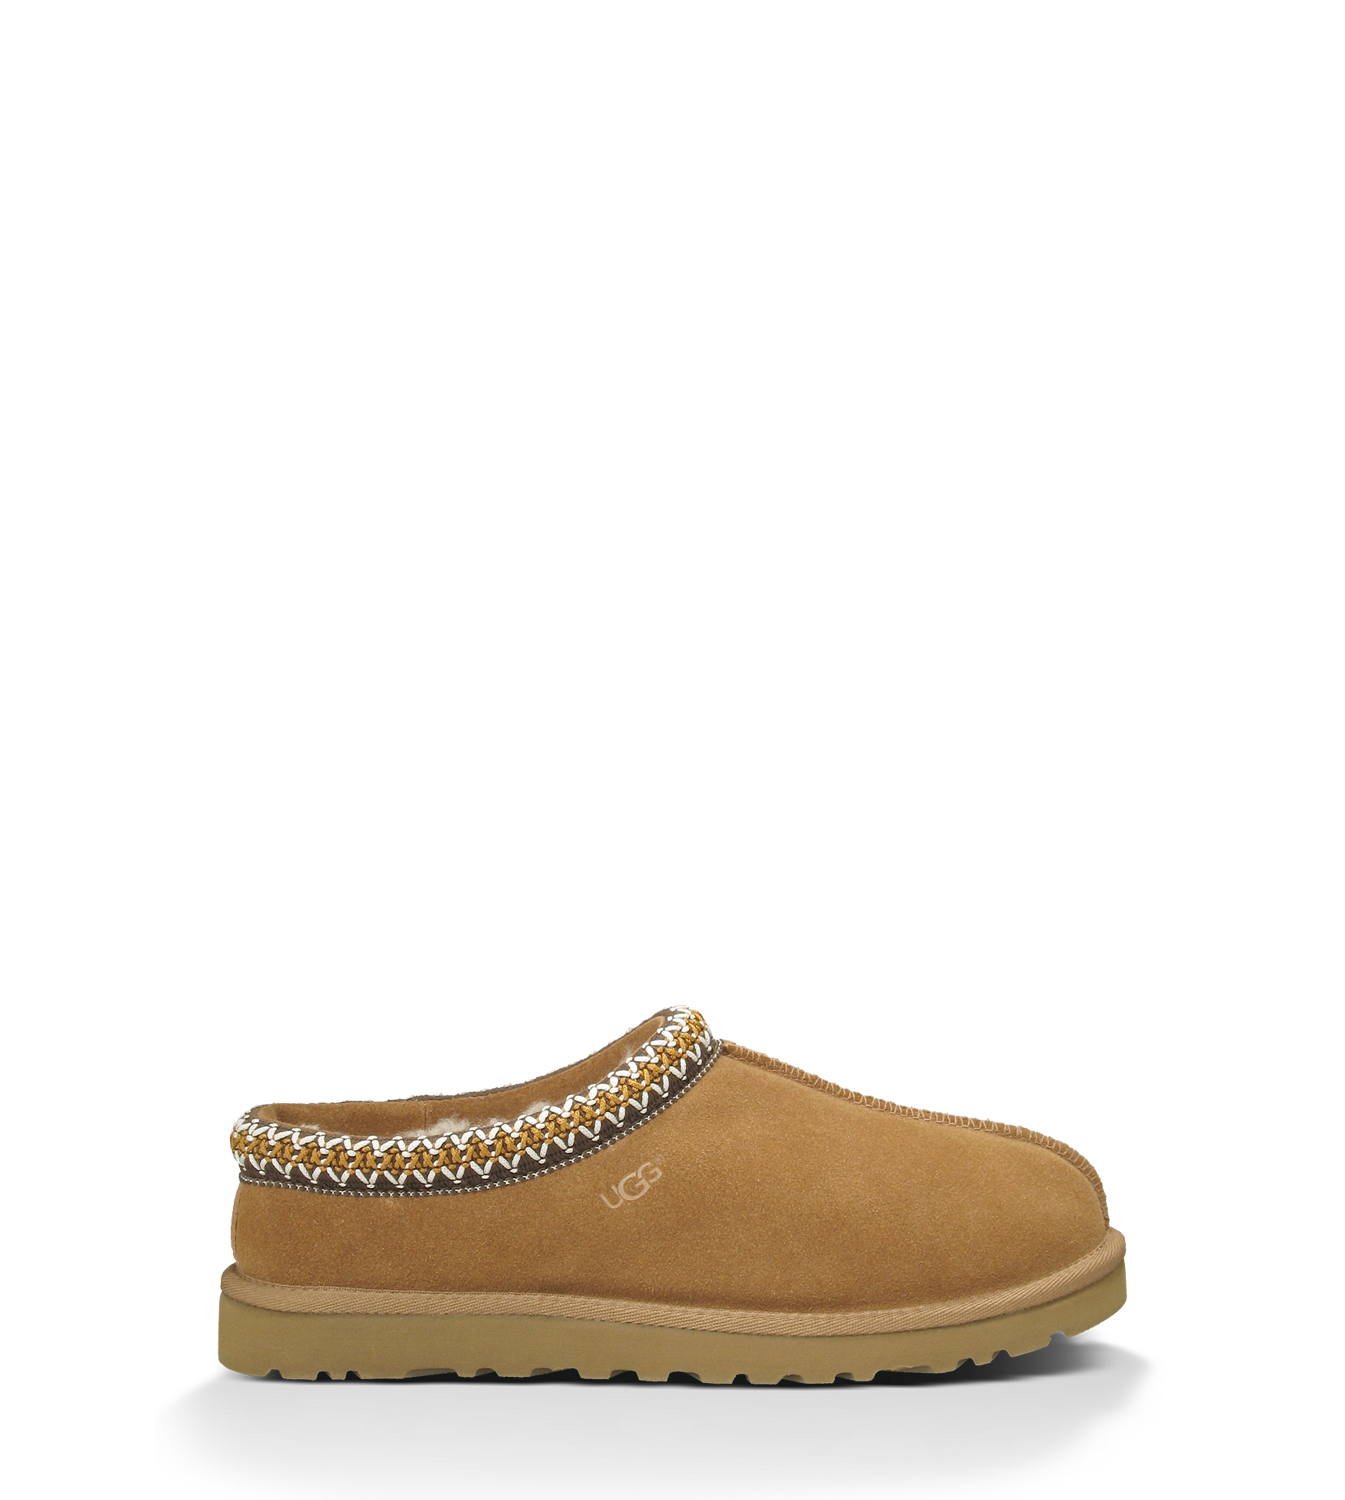 ugg femme chaussons